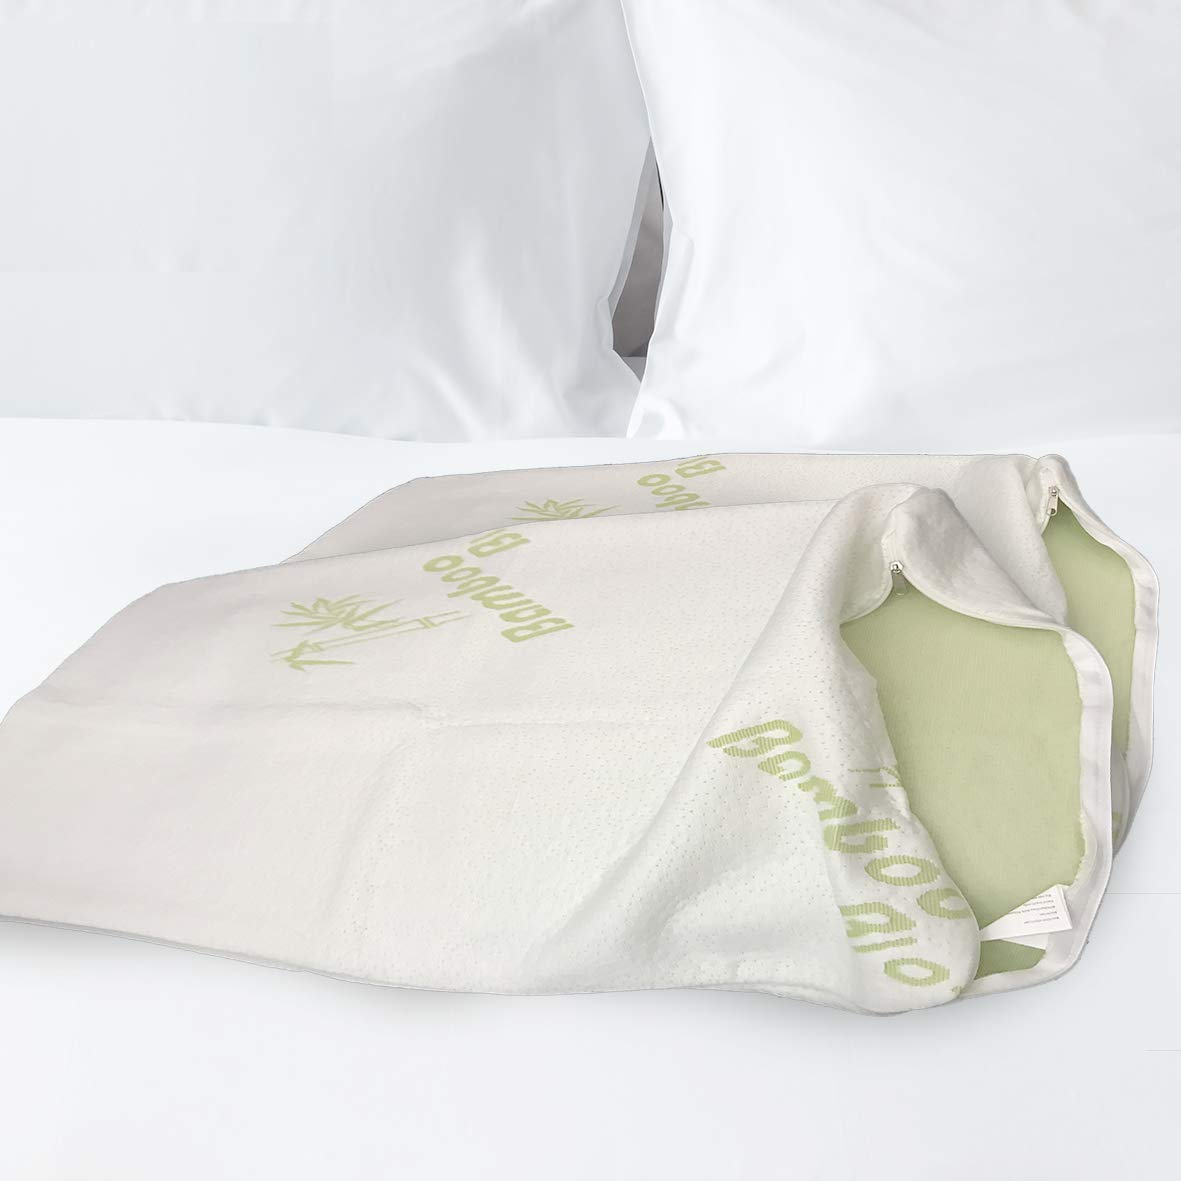 Large Bamboo Pillow Cases White Hypoallergenic Microfibre Anti Allergy Protects Dust Mite, For All Pillows Machine Washable, Cool Pillowcase Helps Asthma Sufferers Sleep Queen Size (50x76cm) Pillow Case Only The Bamboo Pillow Others